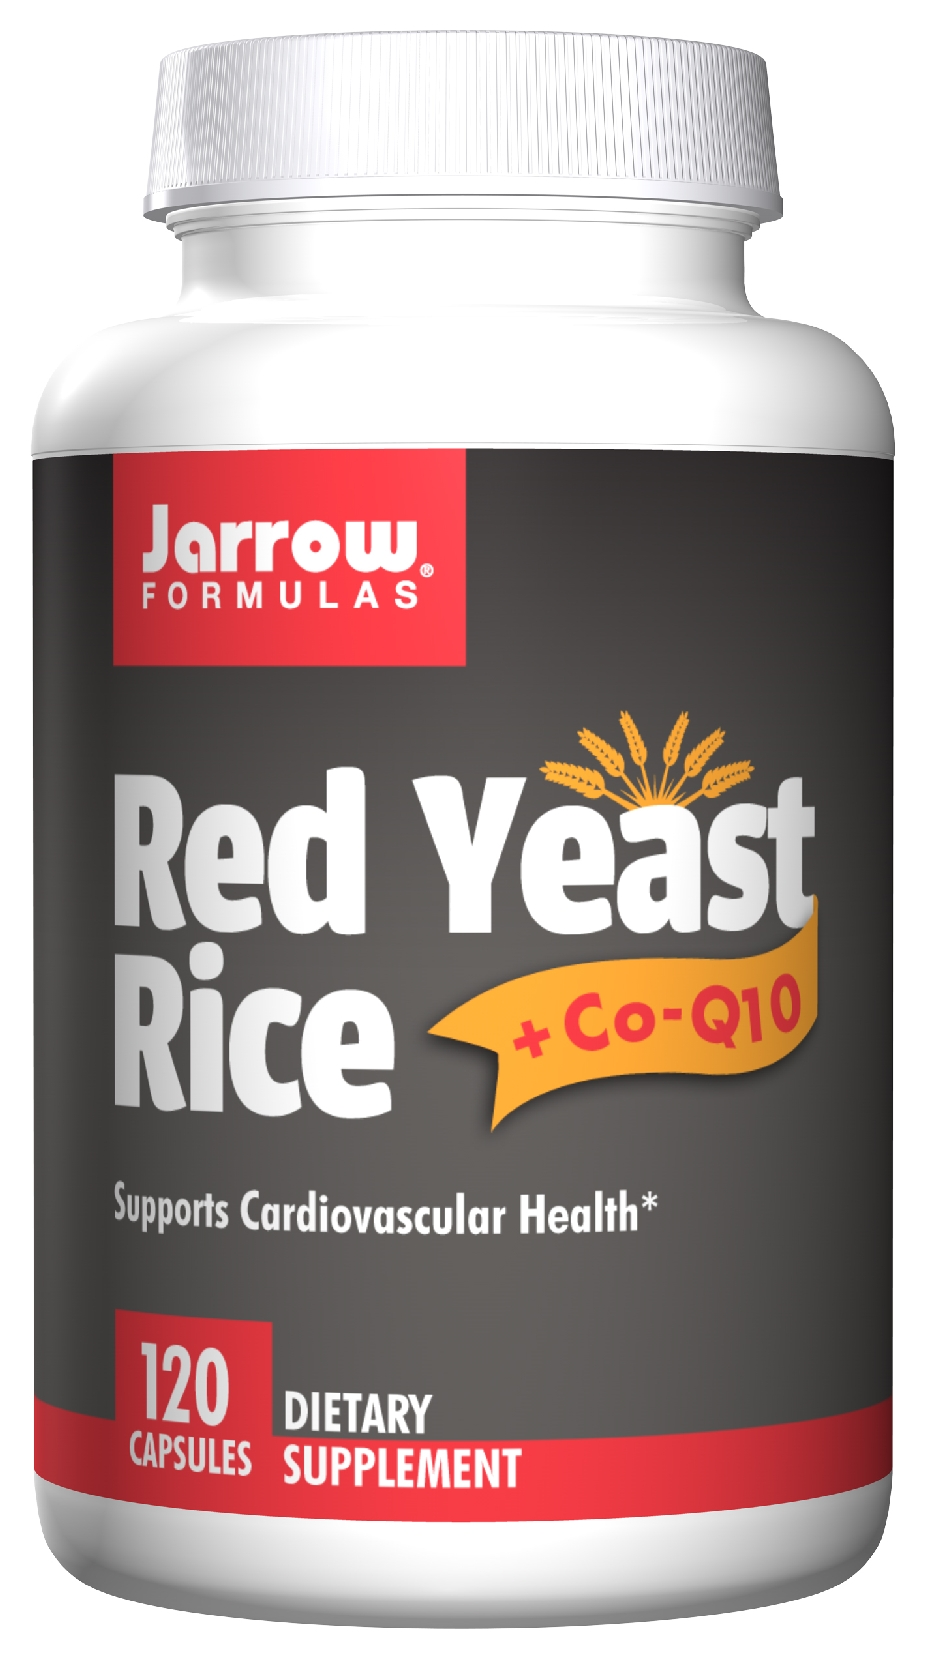 Red Yeast Rice + Co-Q10 120 caps by Jarrow Formulas